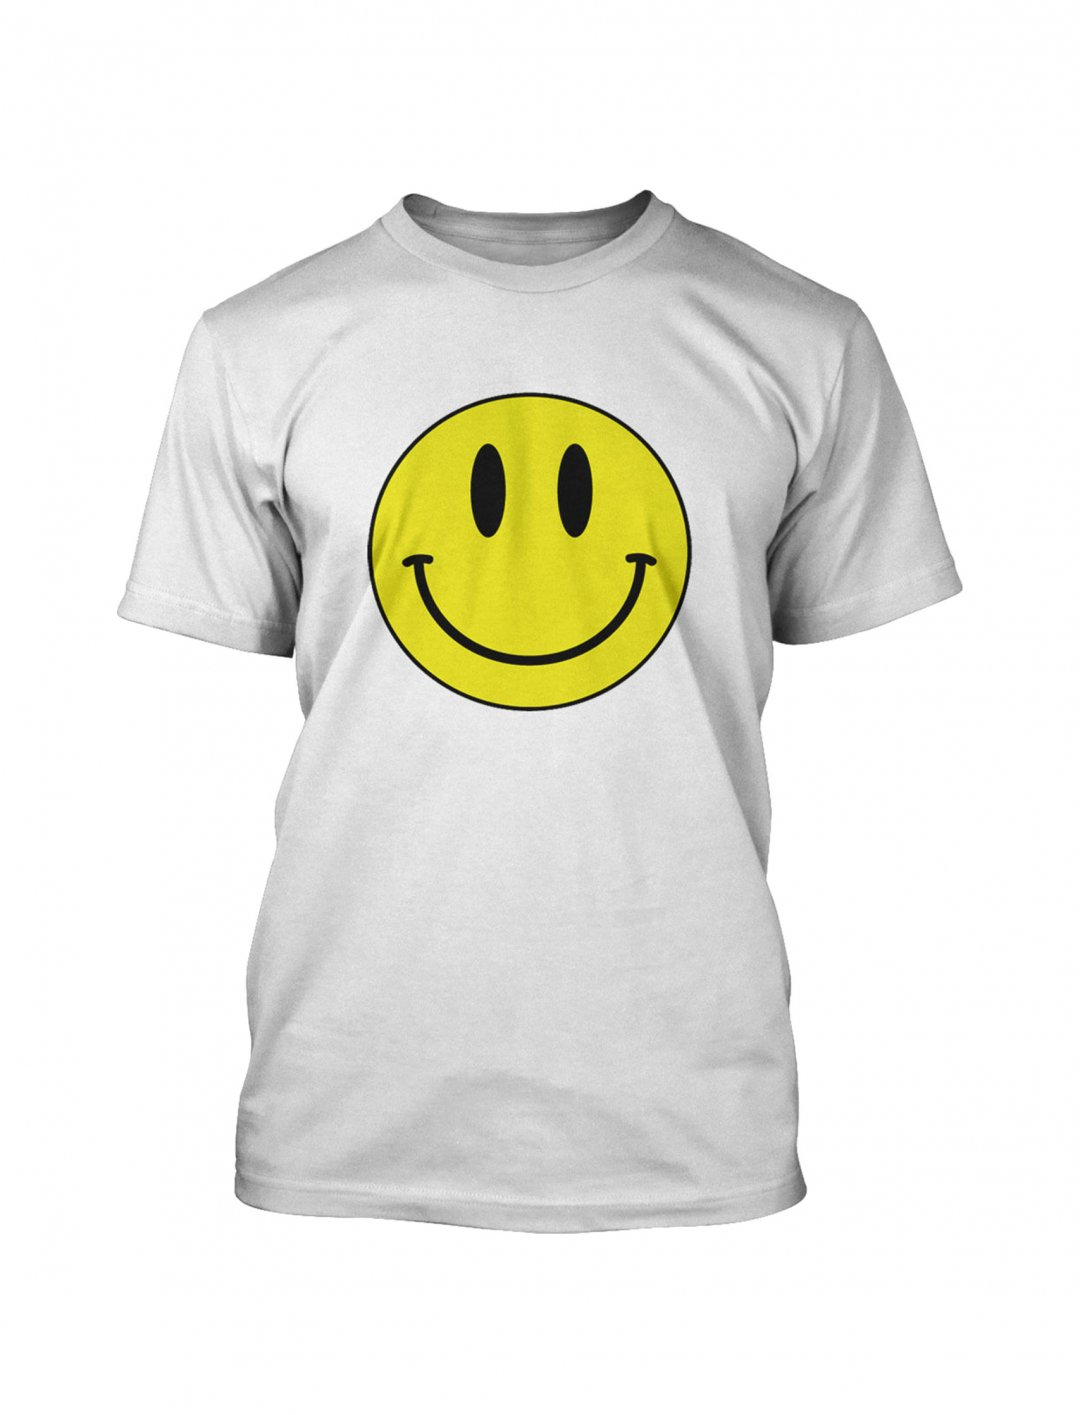 """Smiley Face T-Shirt {""""id"""":5,""""product_section_id"""":1,""""name"""":""""Clothing"""",""""order"""":5}"""